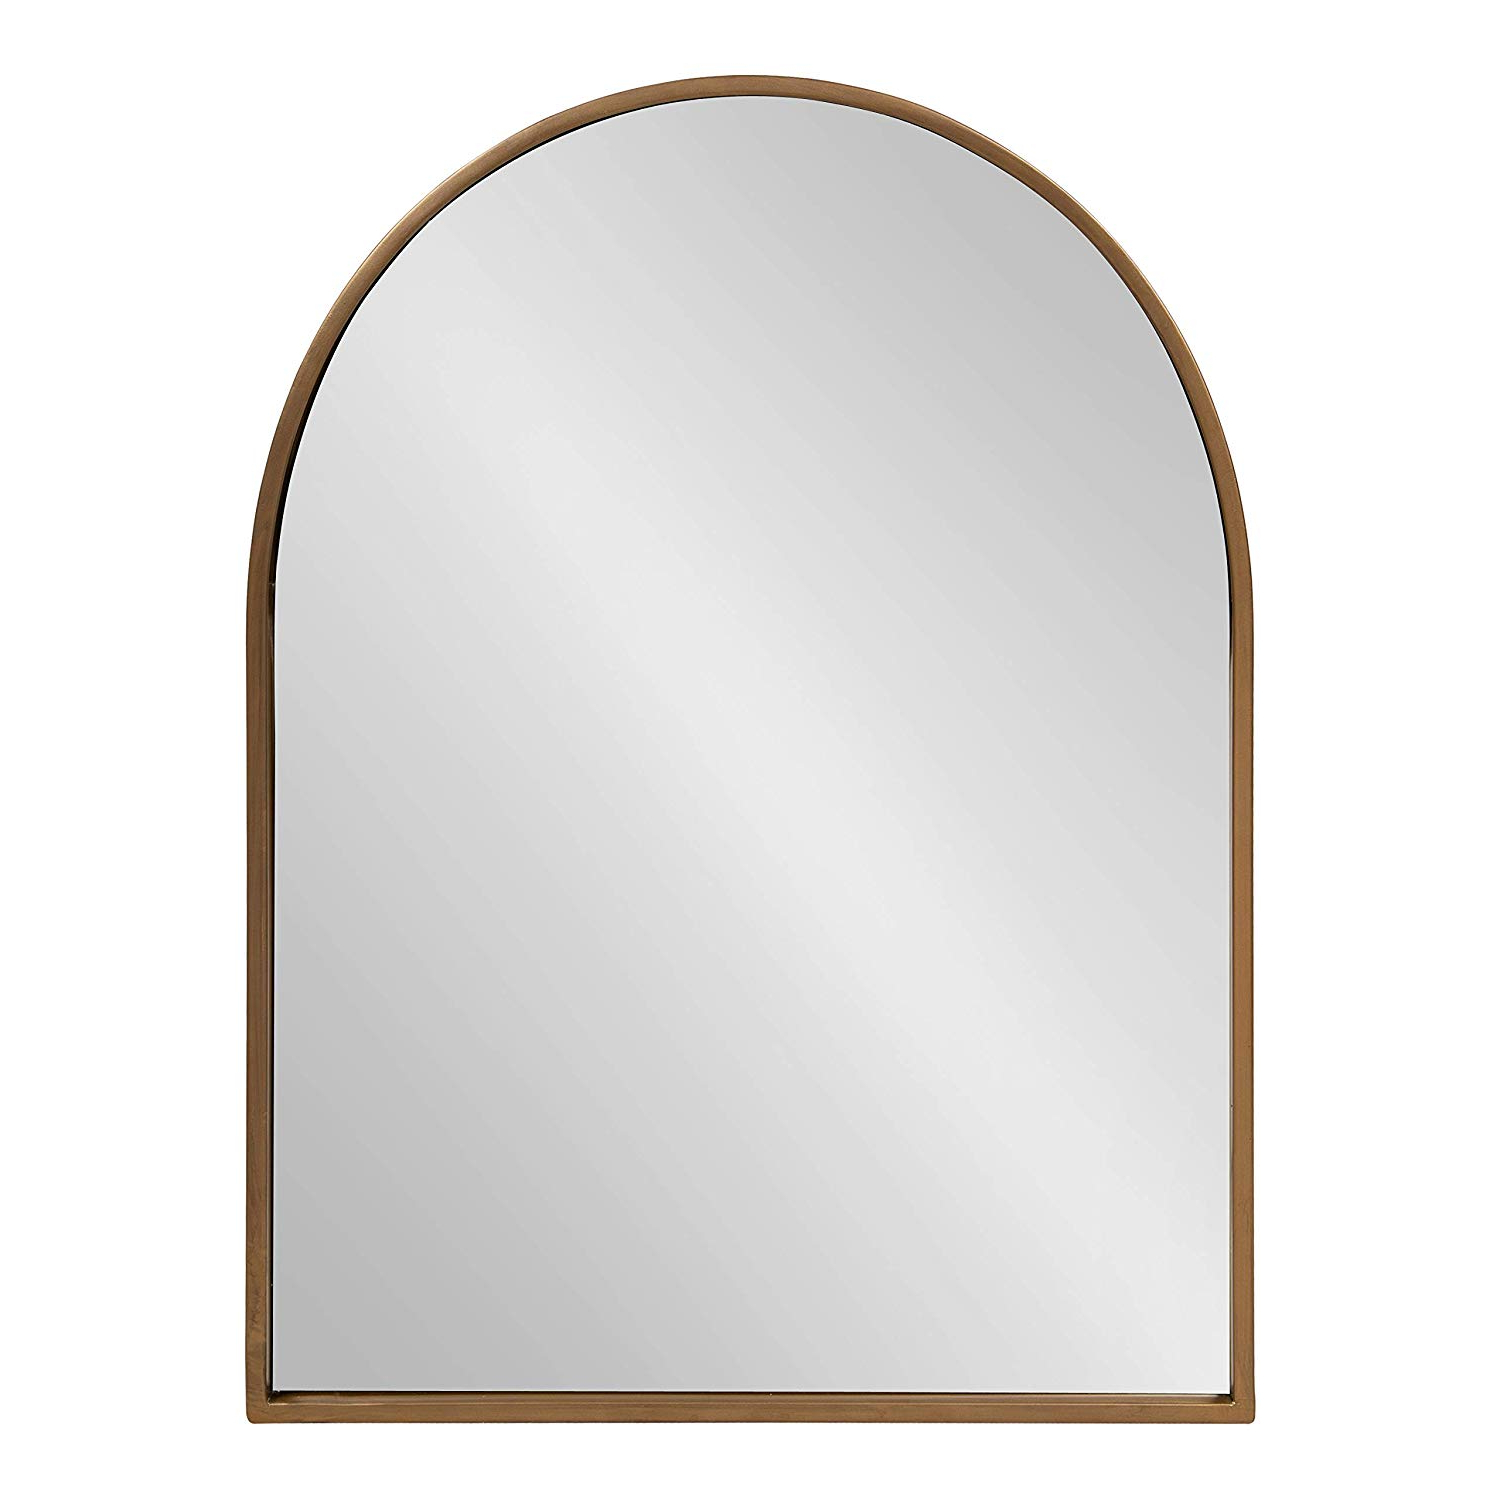 Popular Arch Wall Mirrors Within Kate And Laurel Valenti Metal Frame Arch Wall Mirror, Gold, 24X (View 19 of 20)